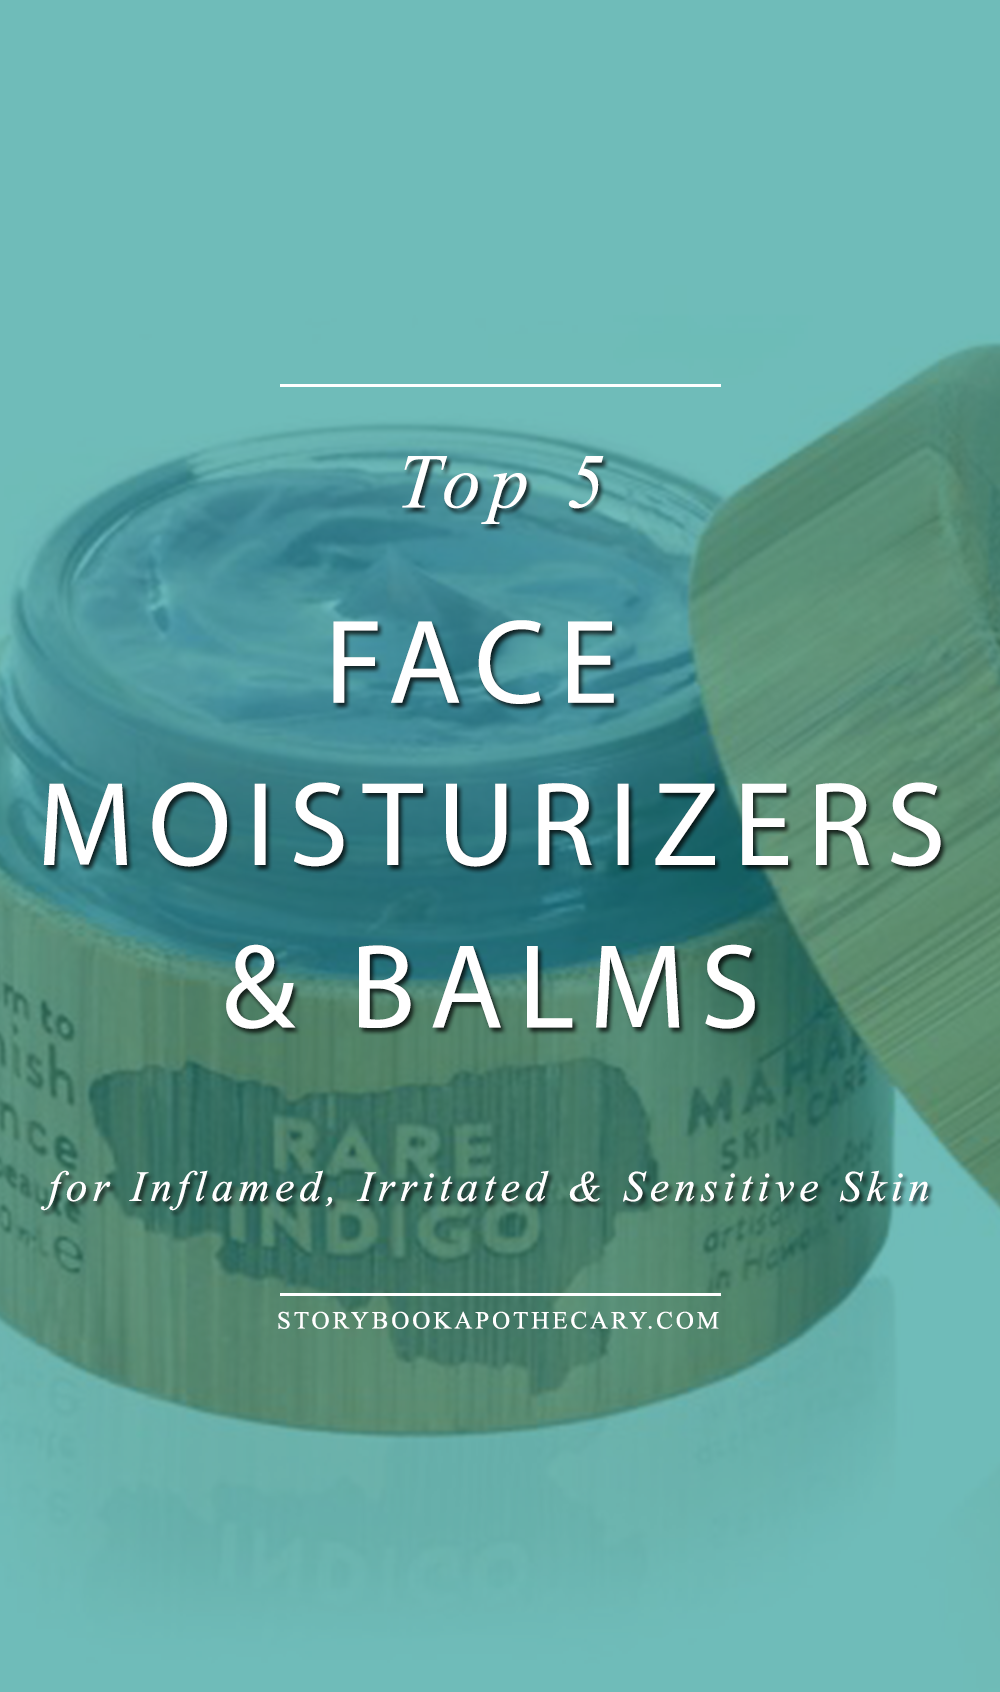 Top 5 Face Moisturizers for Inflamed, Irritated